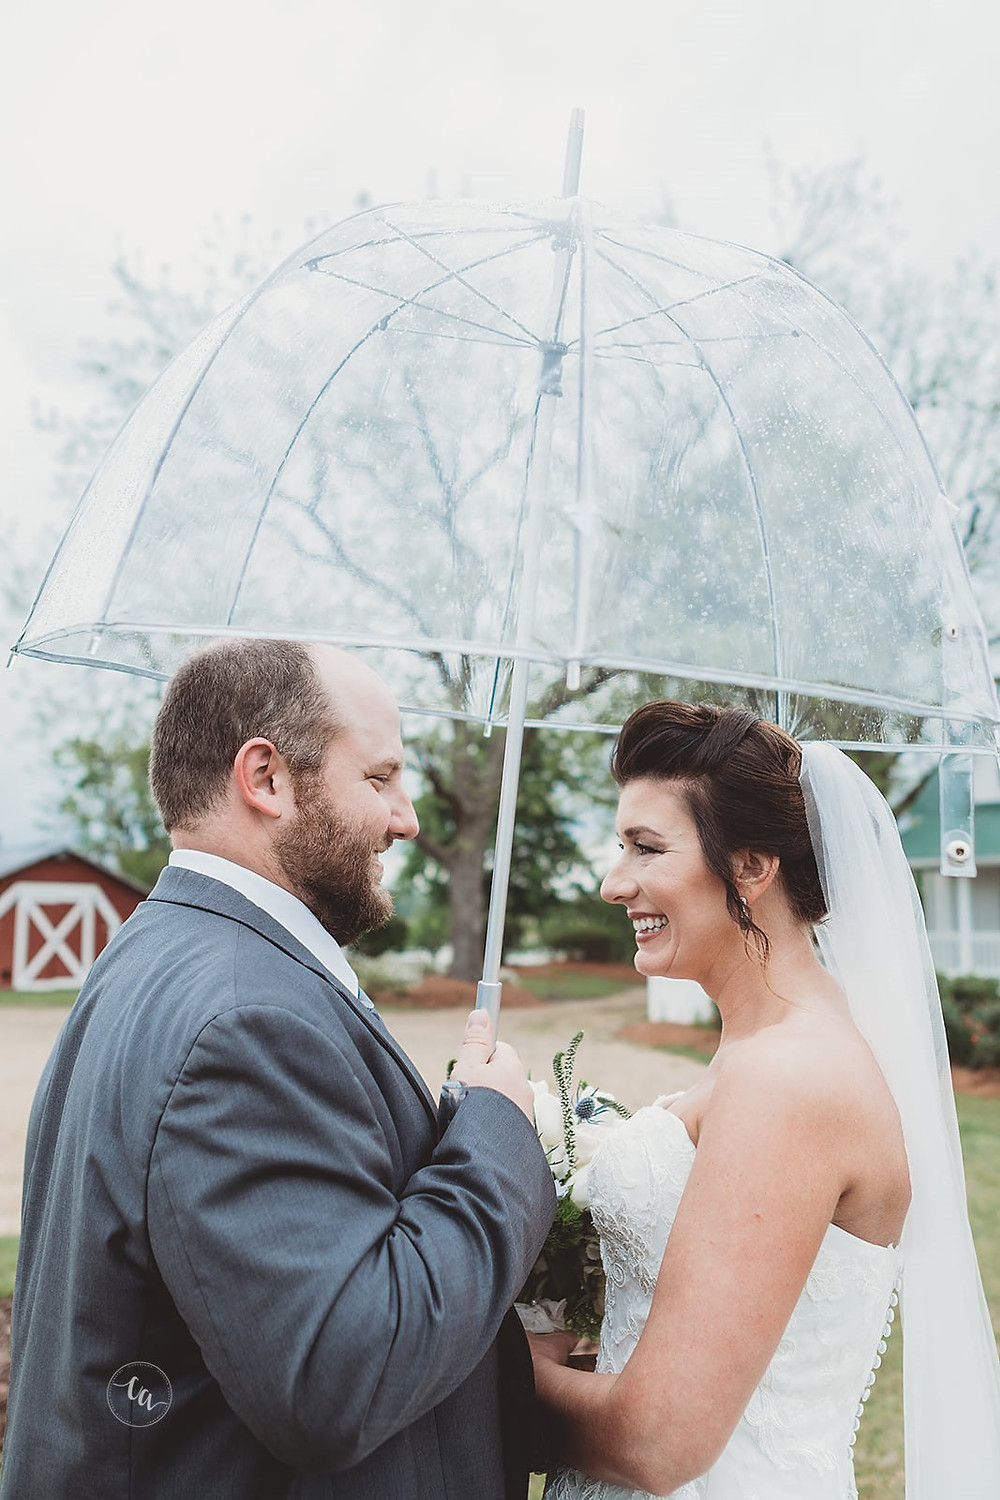 Danielle+Matt under umbrella